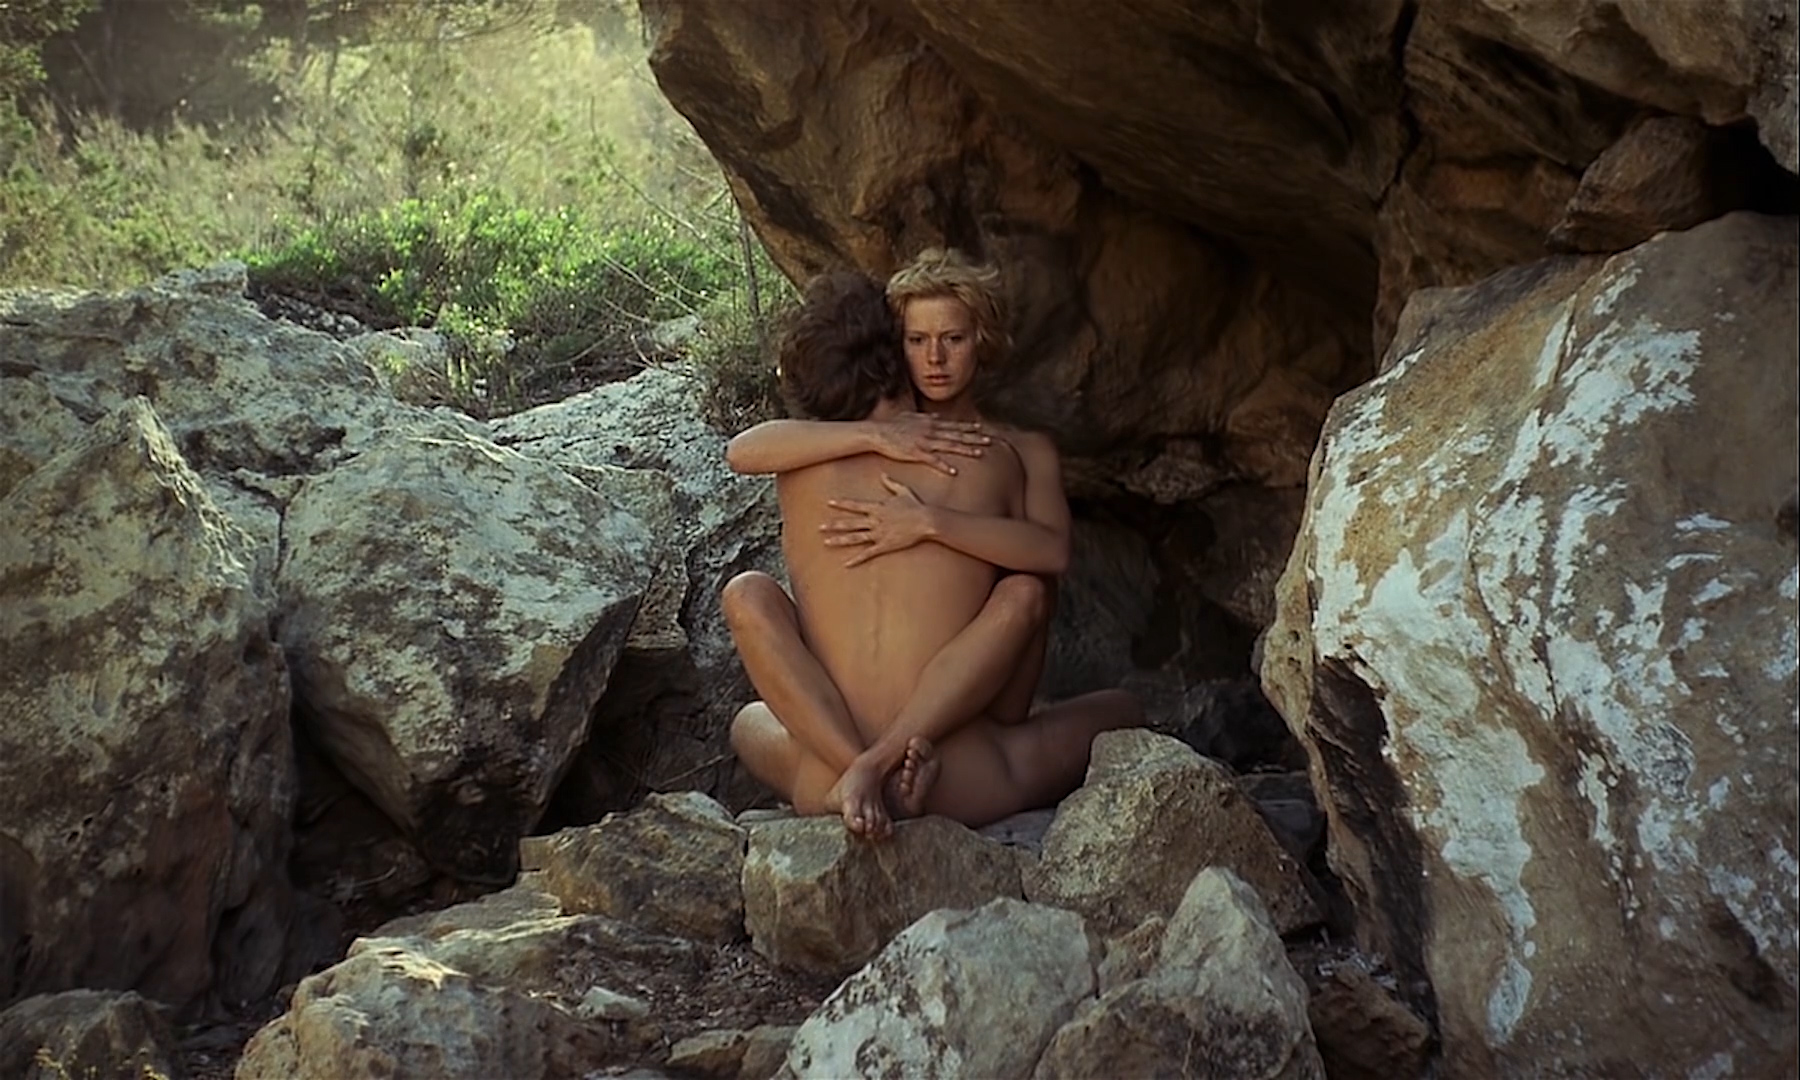 Mimsy Farmer nude topless and sex - More (1969) hd720-1080p (15)